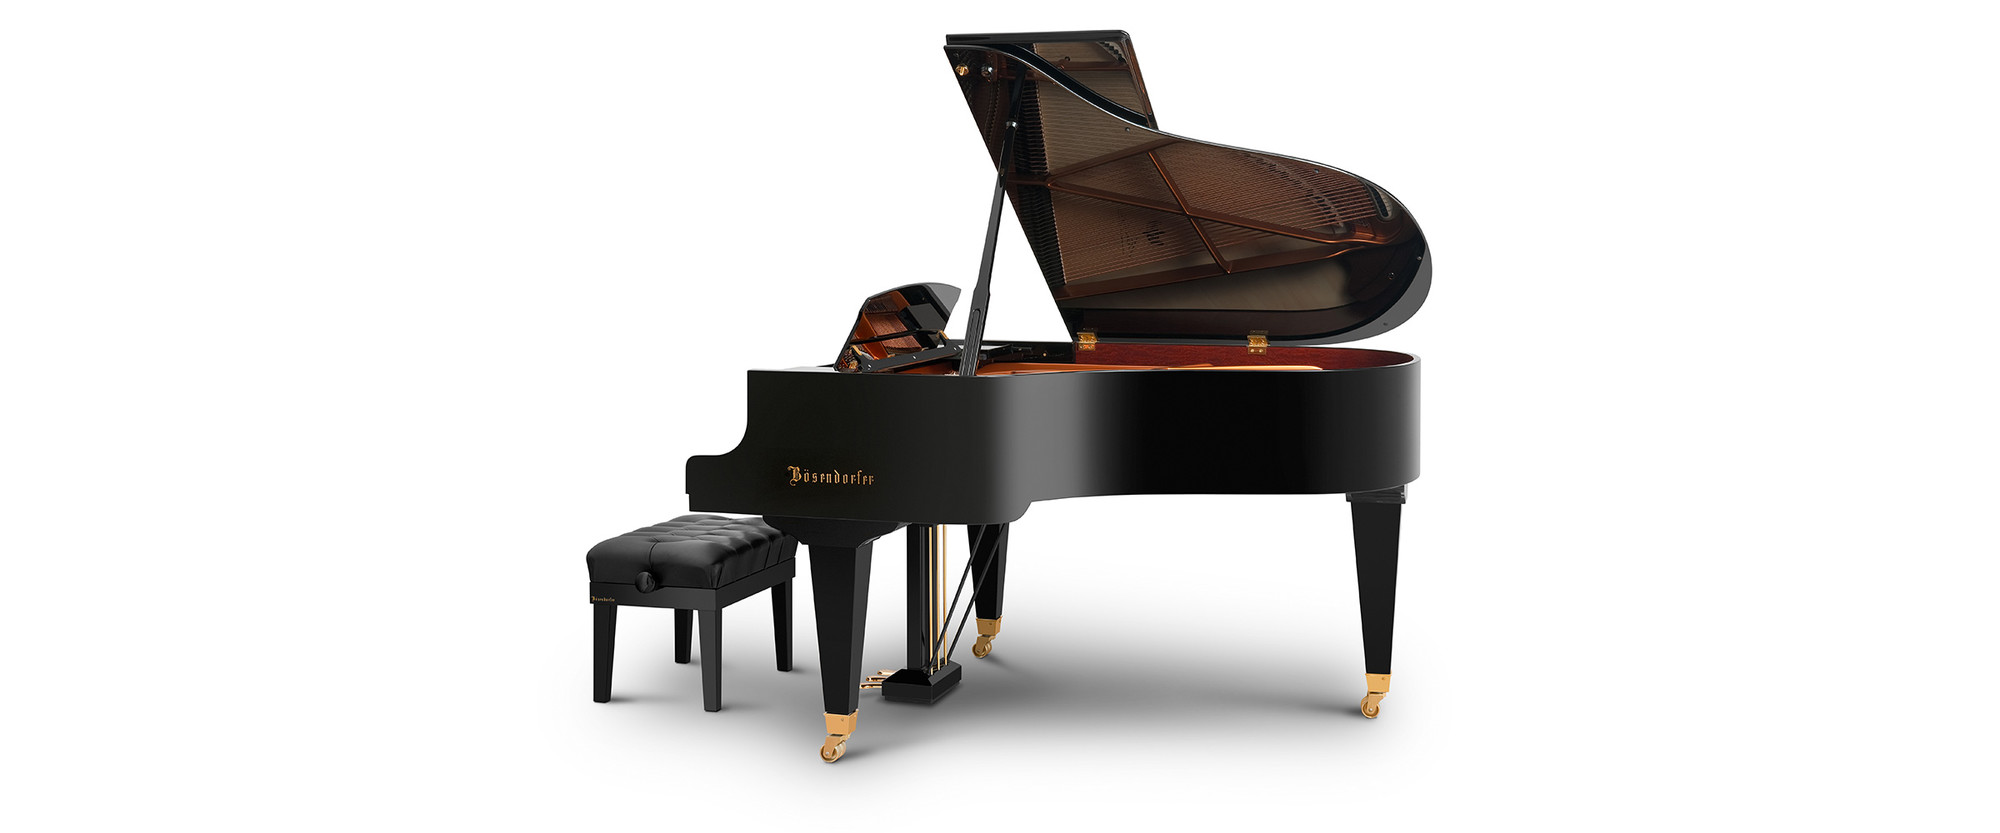 Grand Piano 170 B 246 Sendorfer Grands And Uprights Pianos